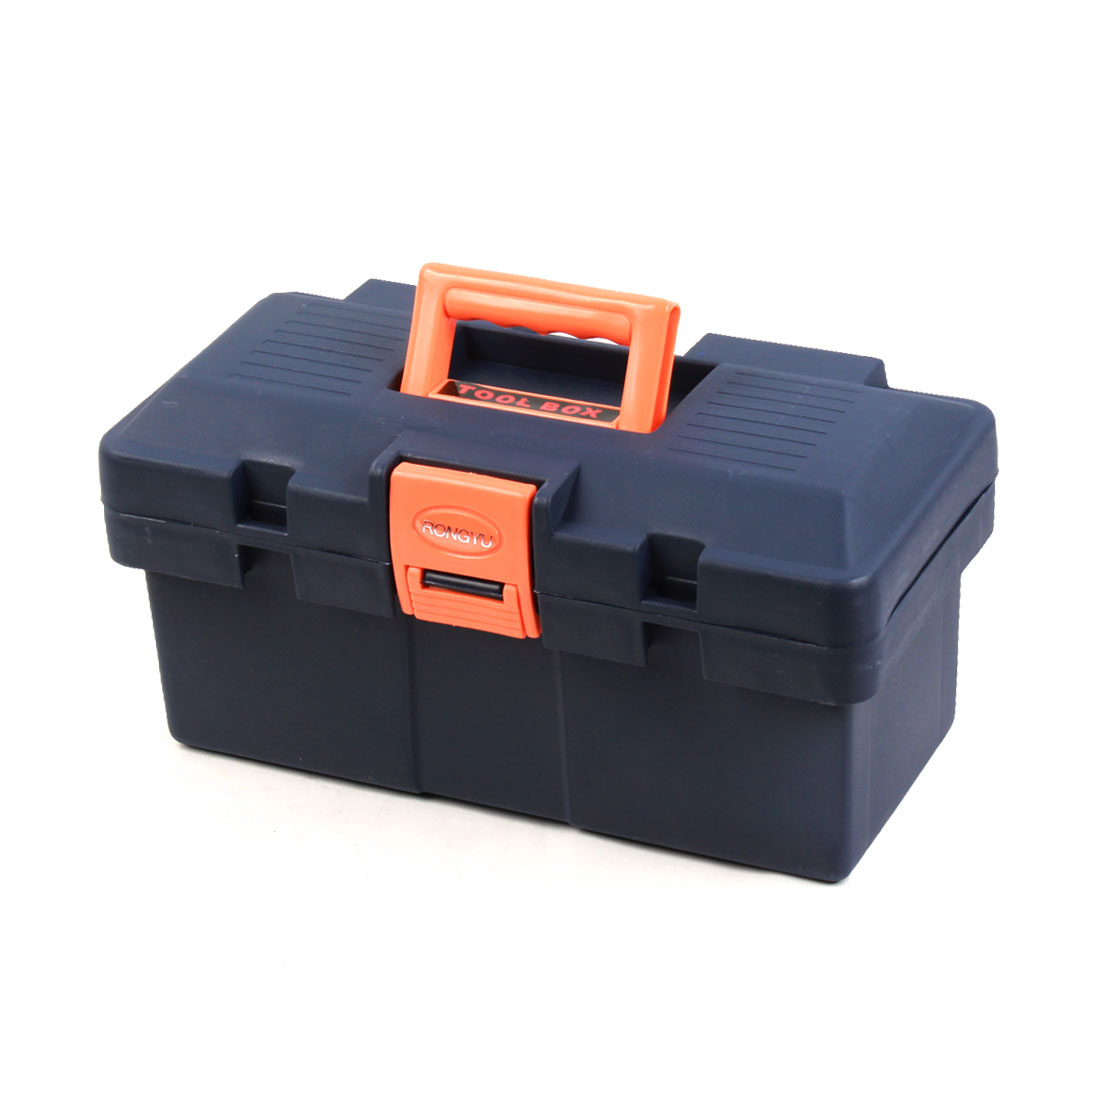 Engineer Plastic Dual Layers Hardware Tool Storage Box Navy Blue Orange